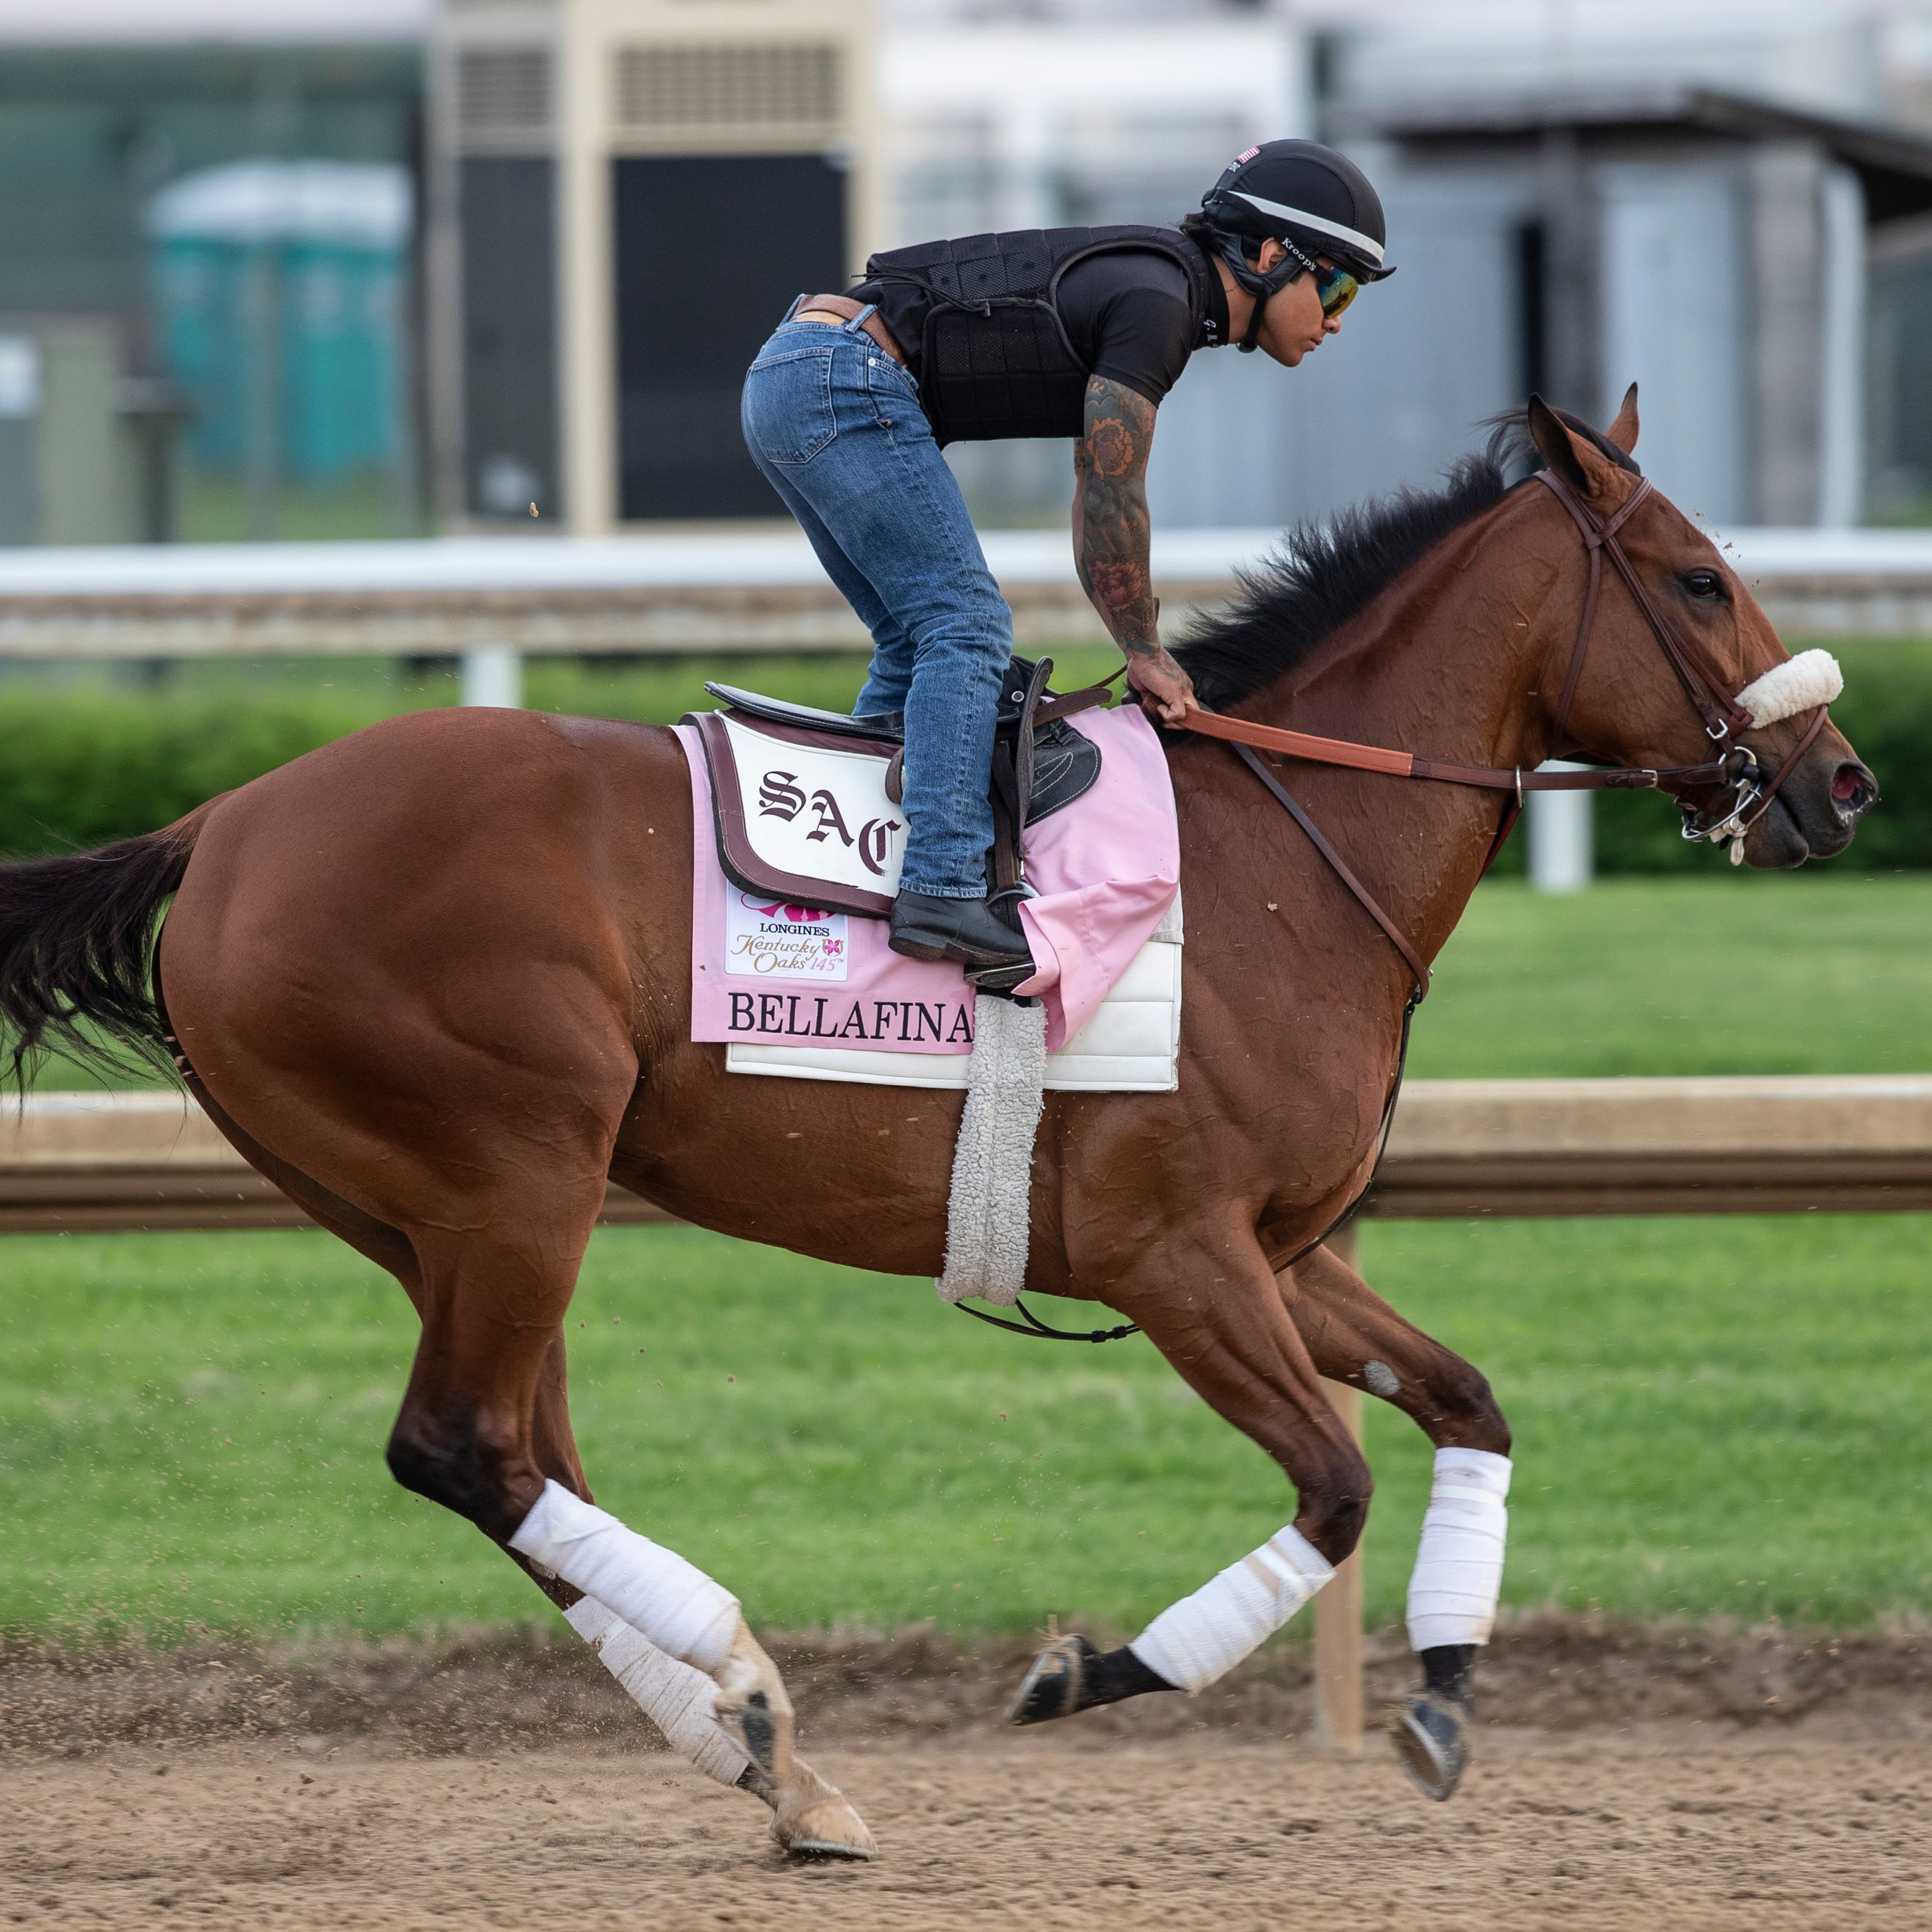 Will Bellafina win the 2019 Kentucky Oaks? Here's an analysis of the field (and a pick)